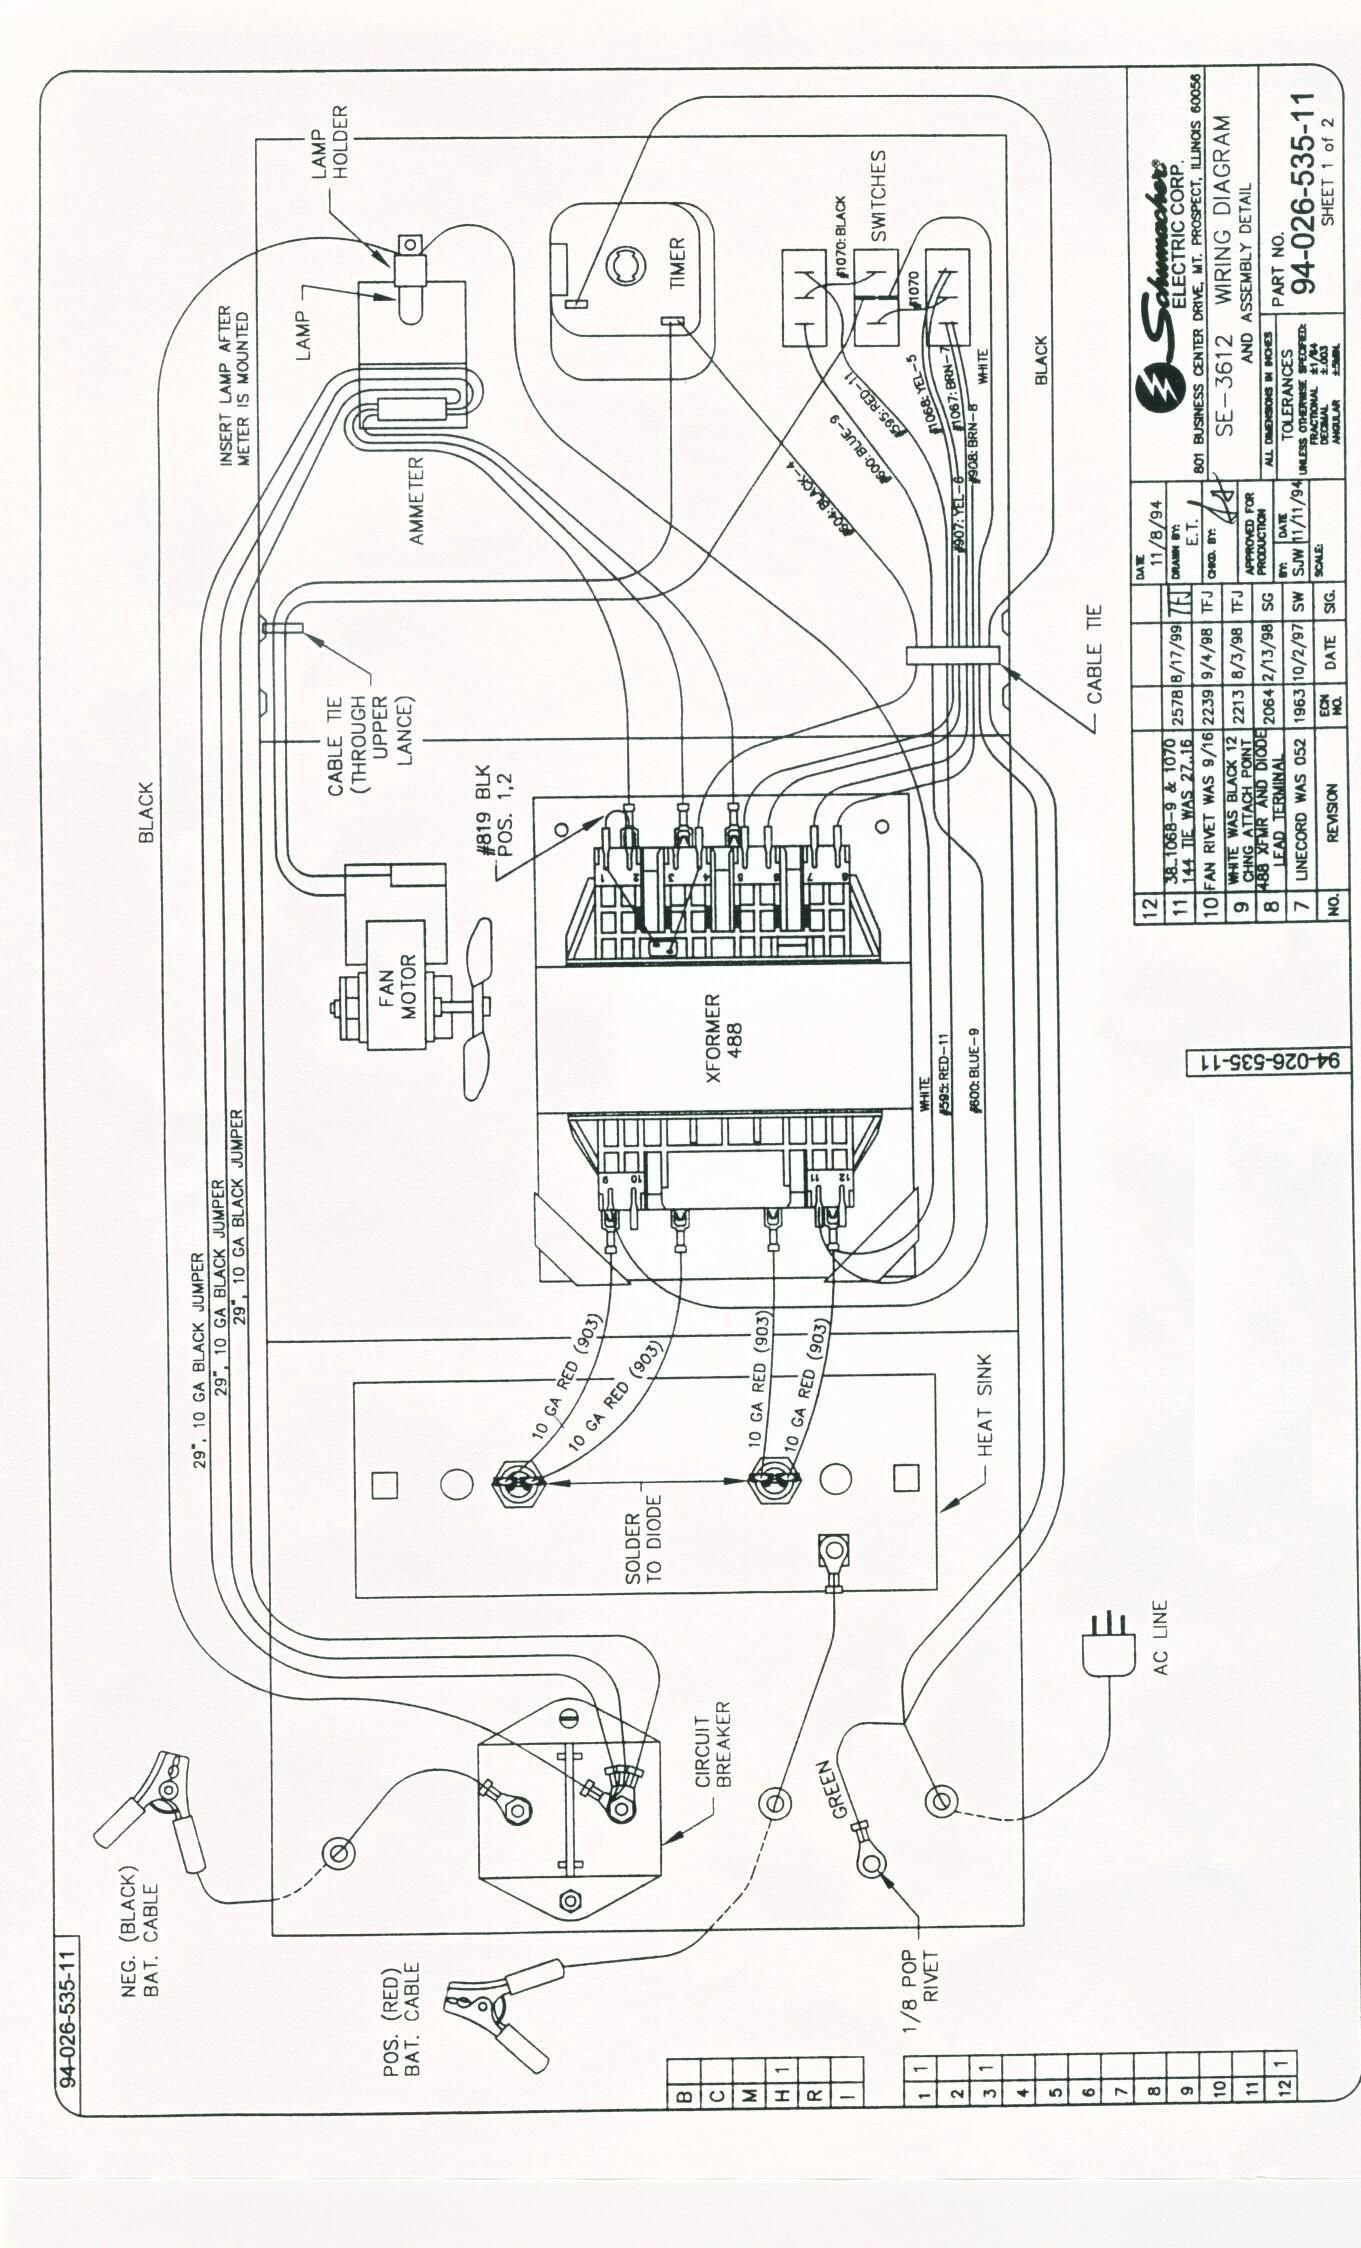 Schumacher Wiring Schematic | Ribbed For Her Wiring diagram on